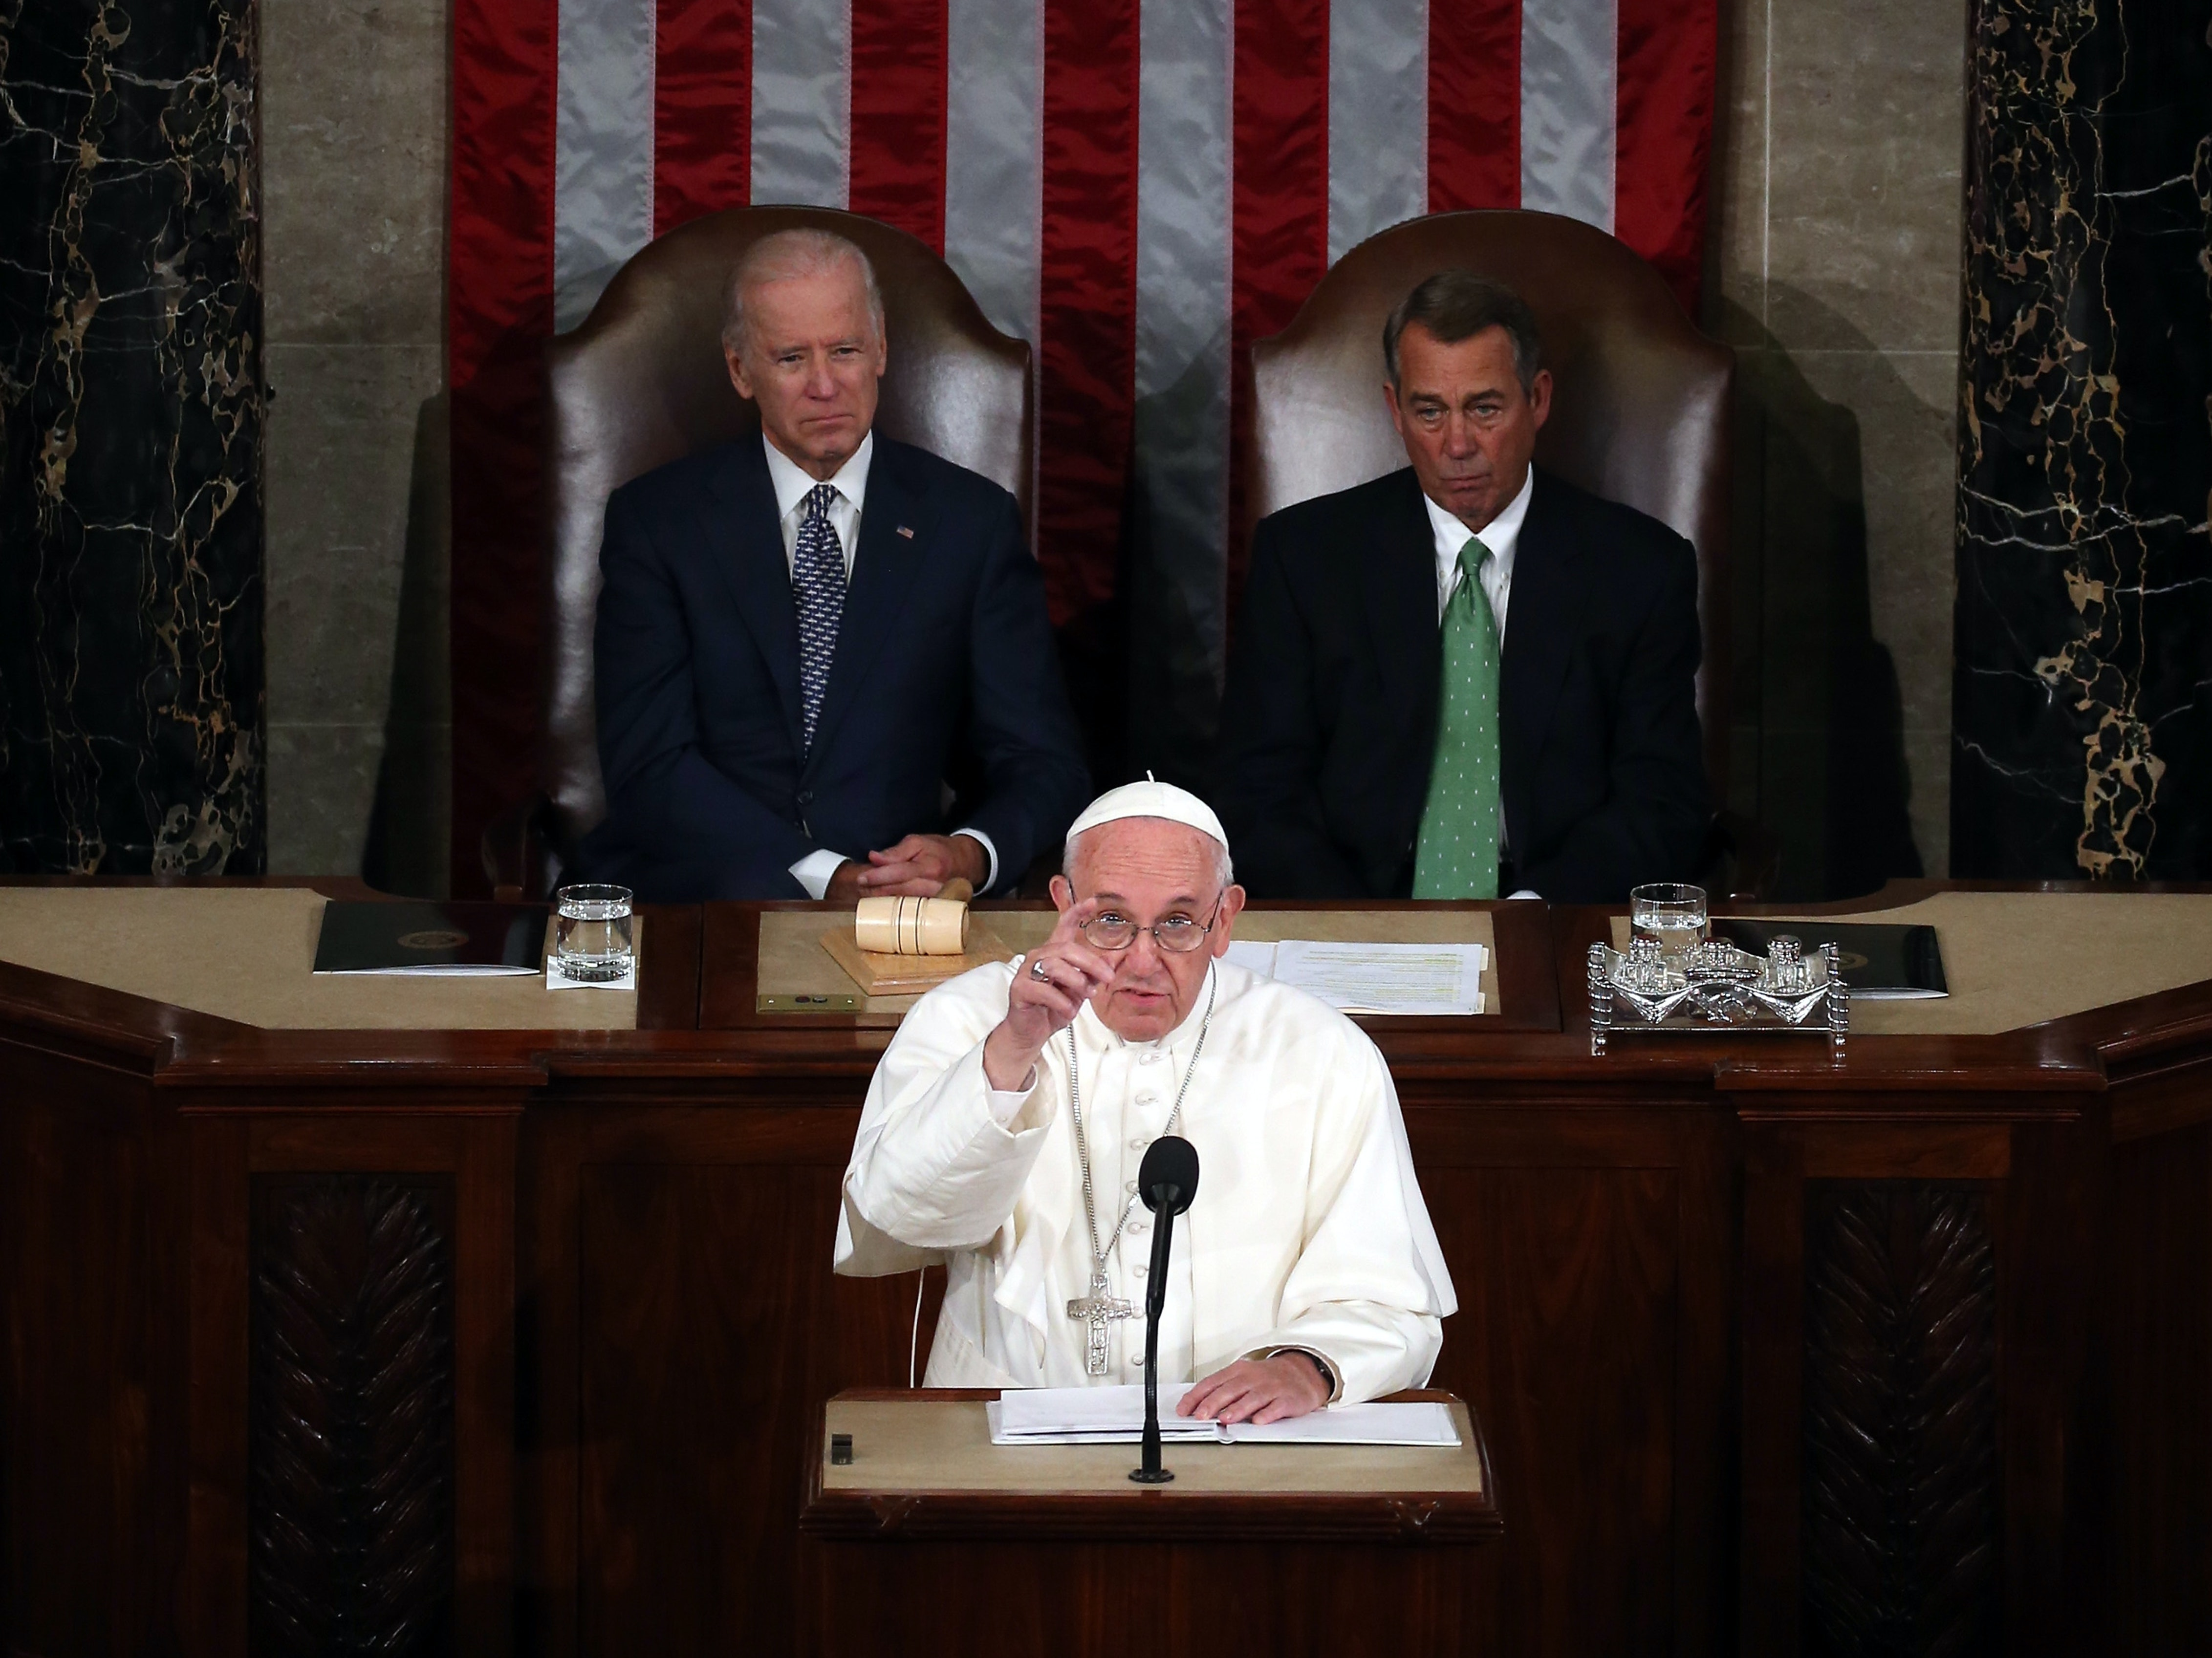 The Pope Urges Congress to 'Include Everyone' on Climate Change